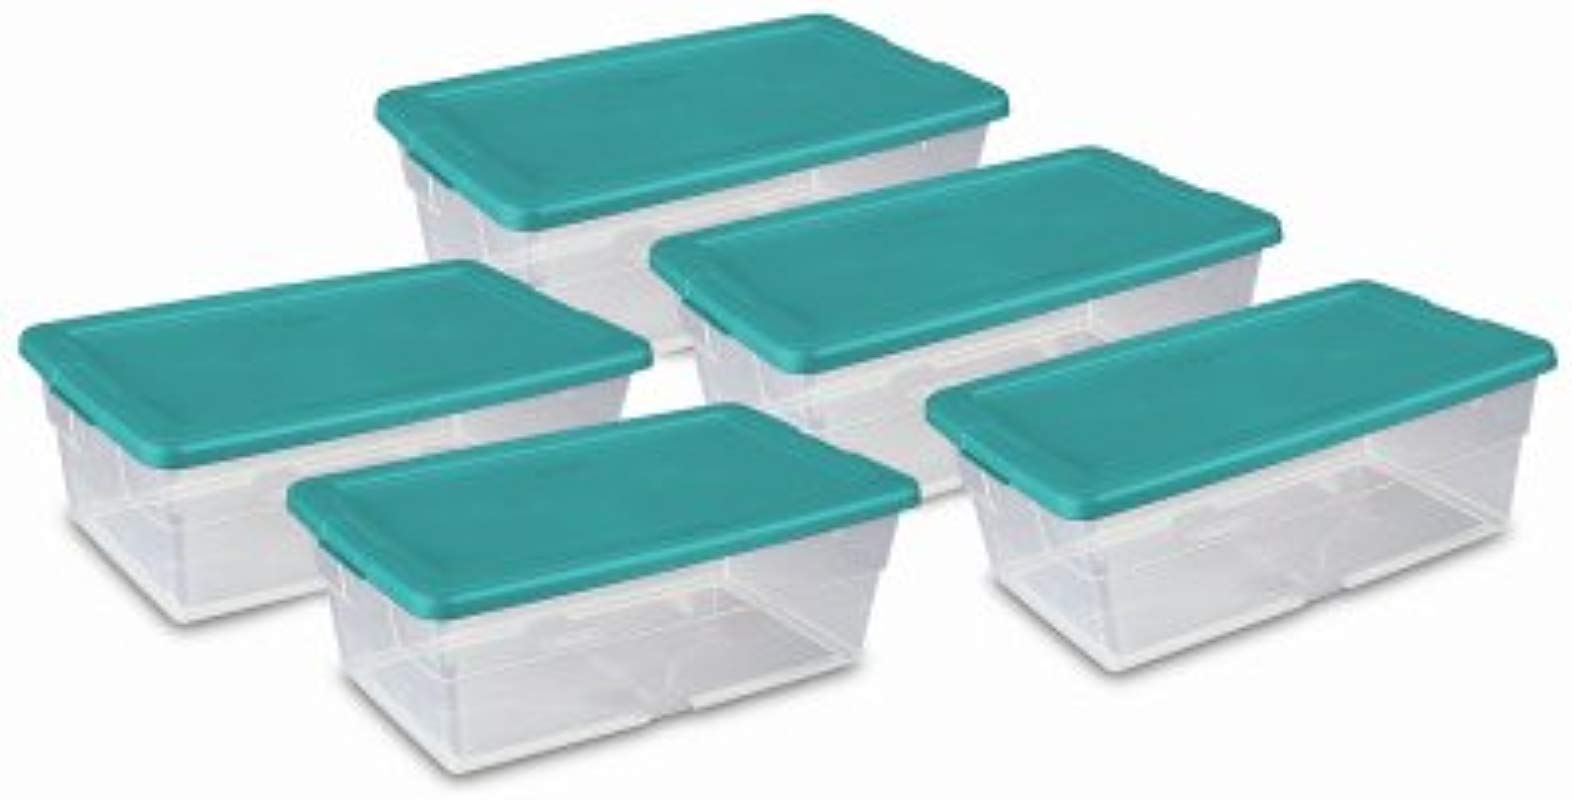 STERILITE 16433W06 6 QT Clear Storage Boxes Banded Together 5 Pack